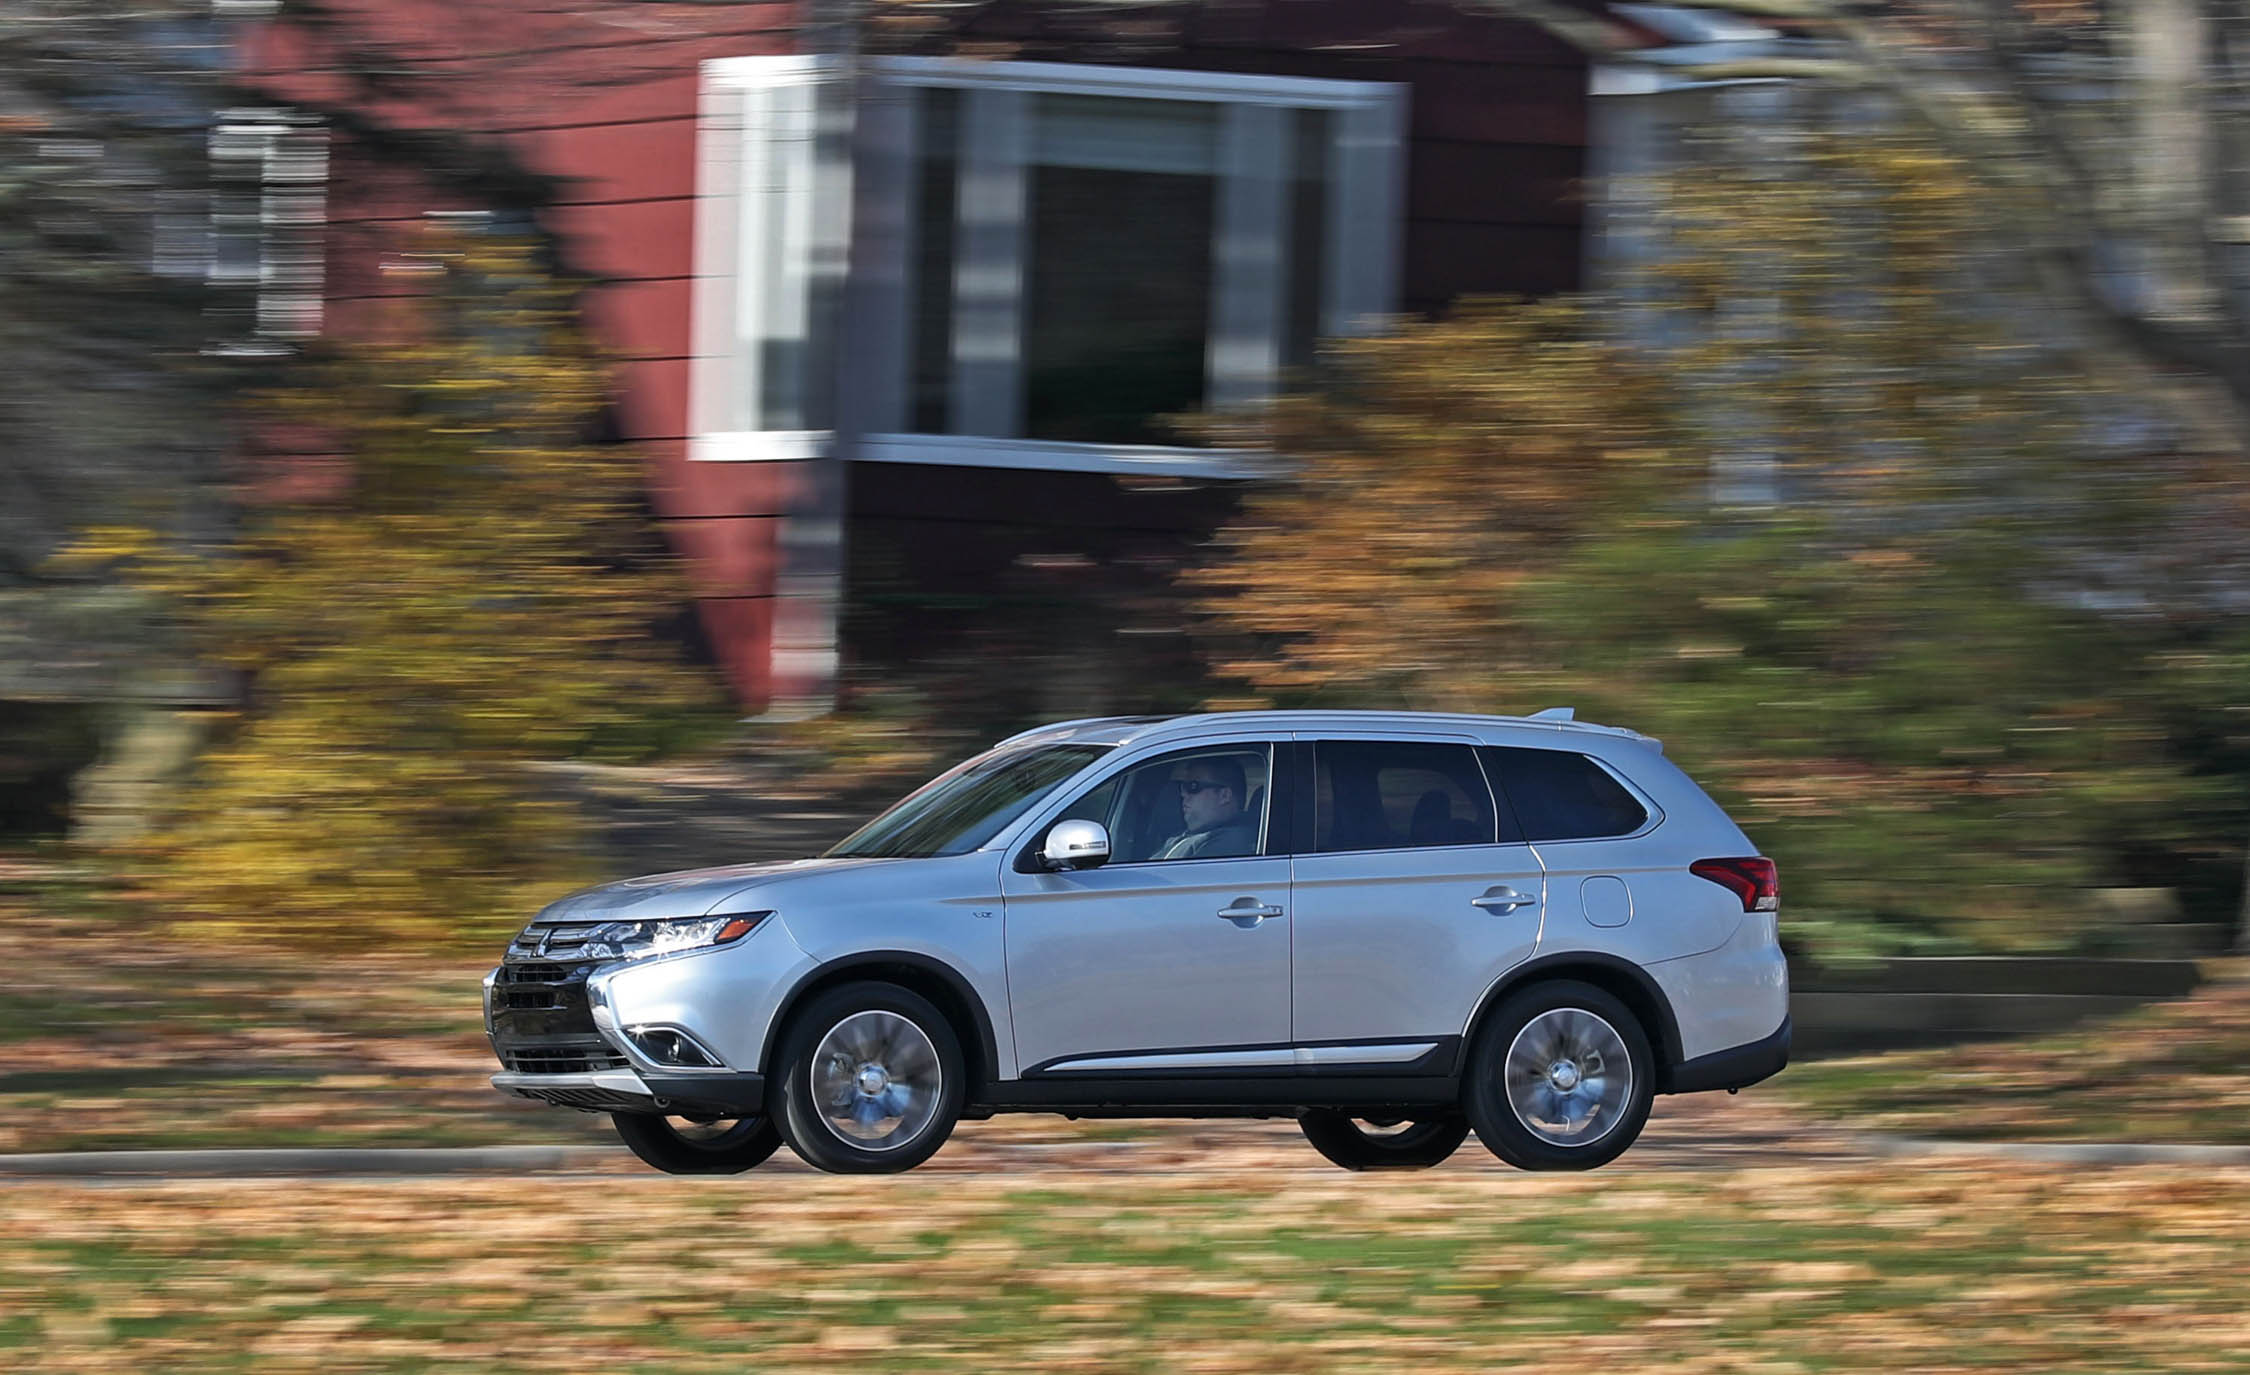 2017 Mitsubishi Outlander Gt Test Drive Silver Metallic Preview (View 5 of 34)